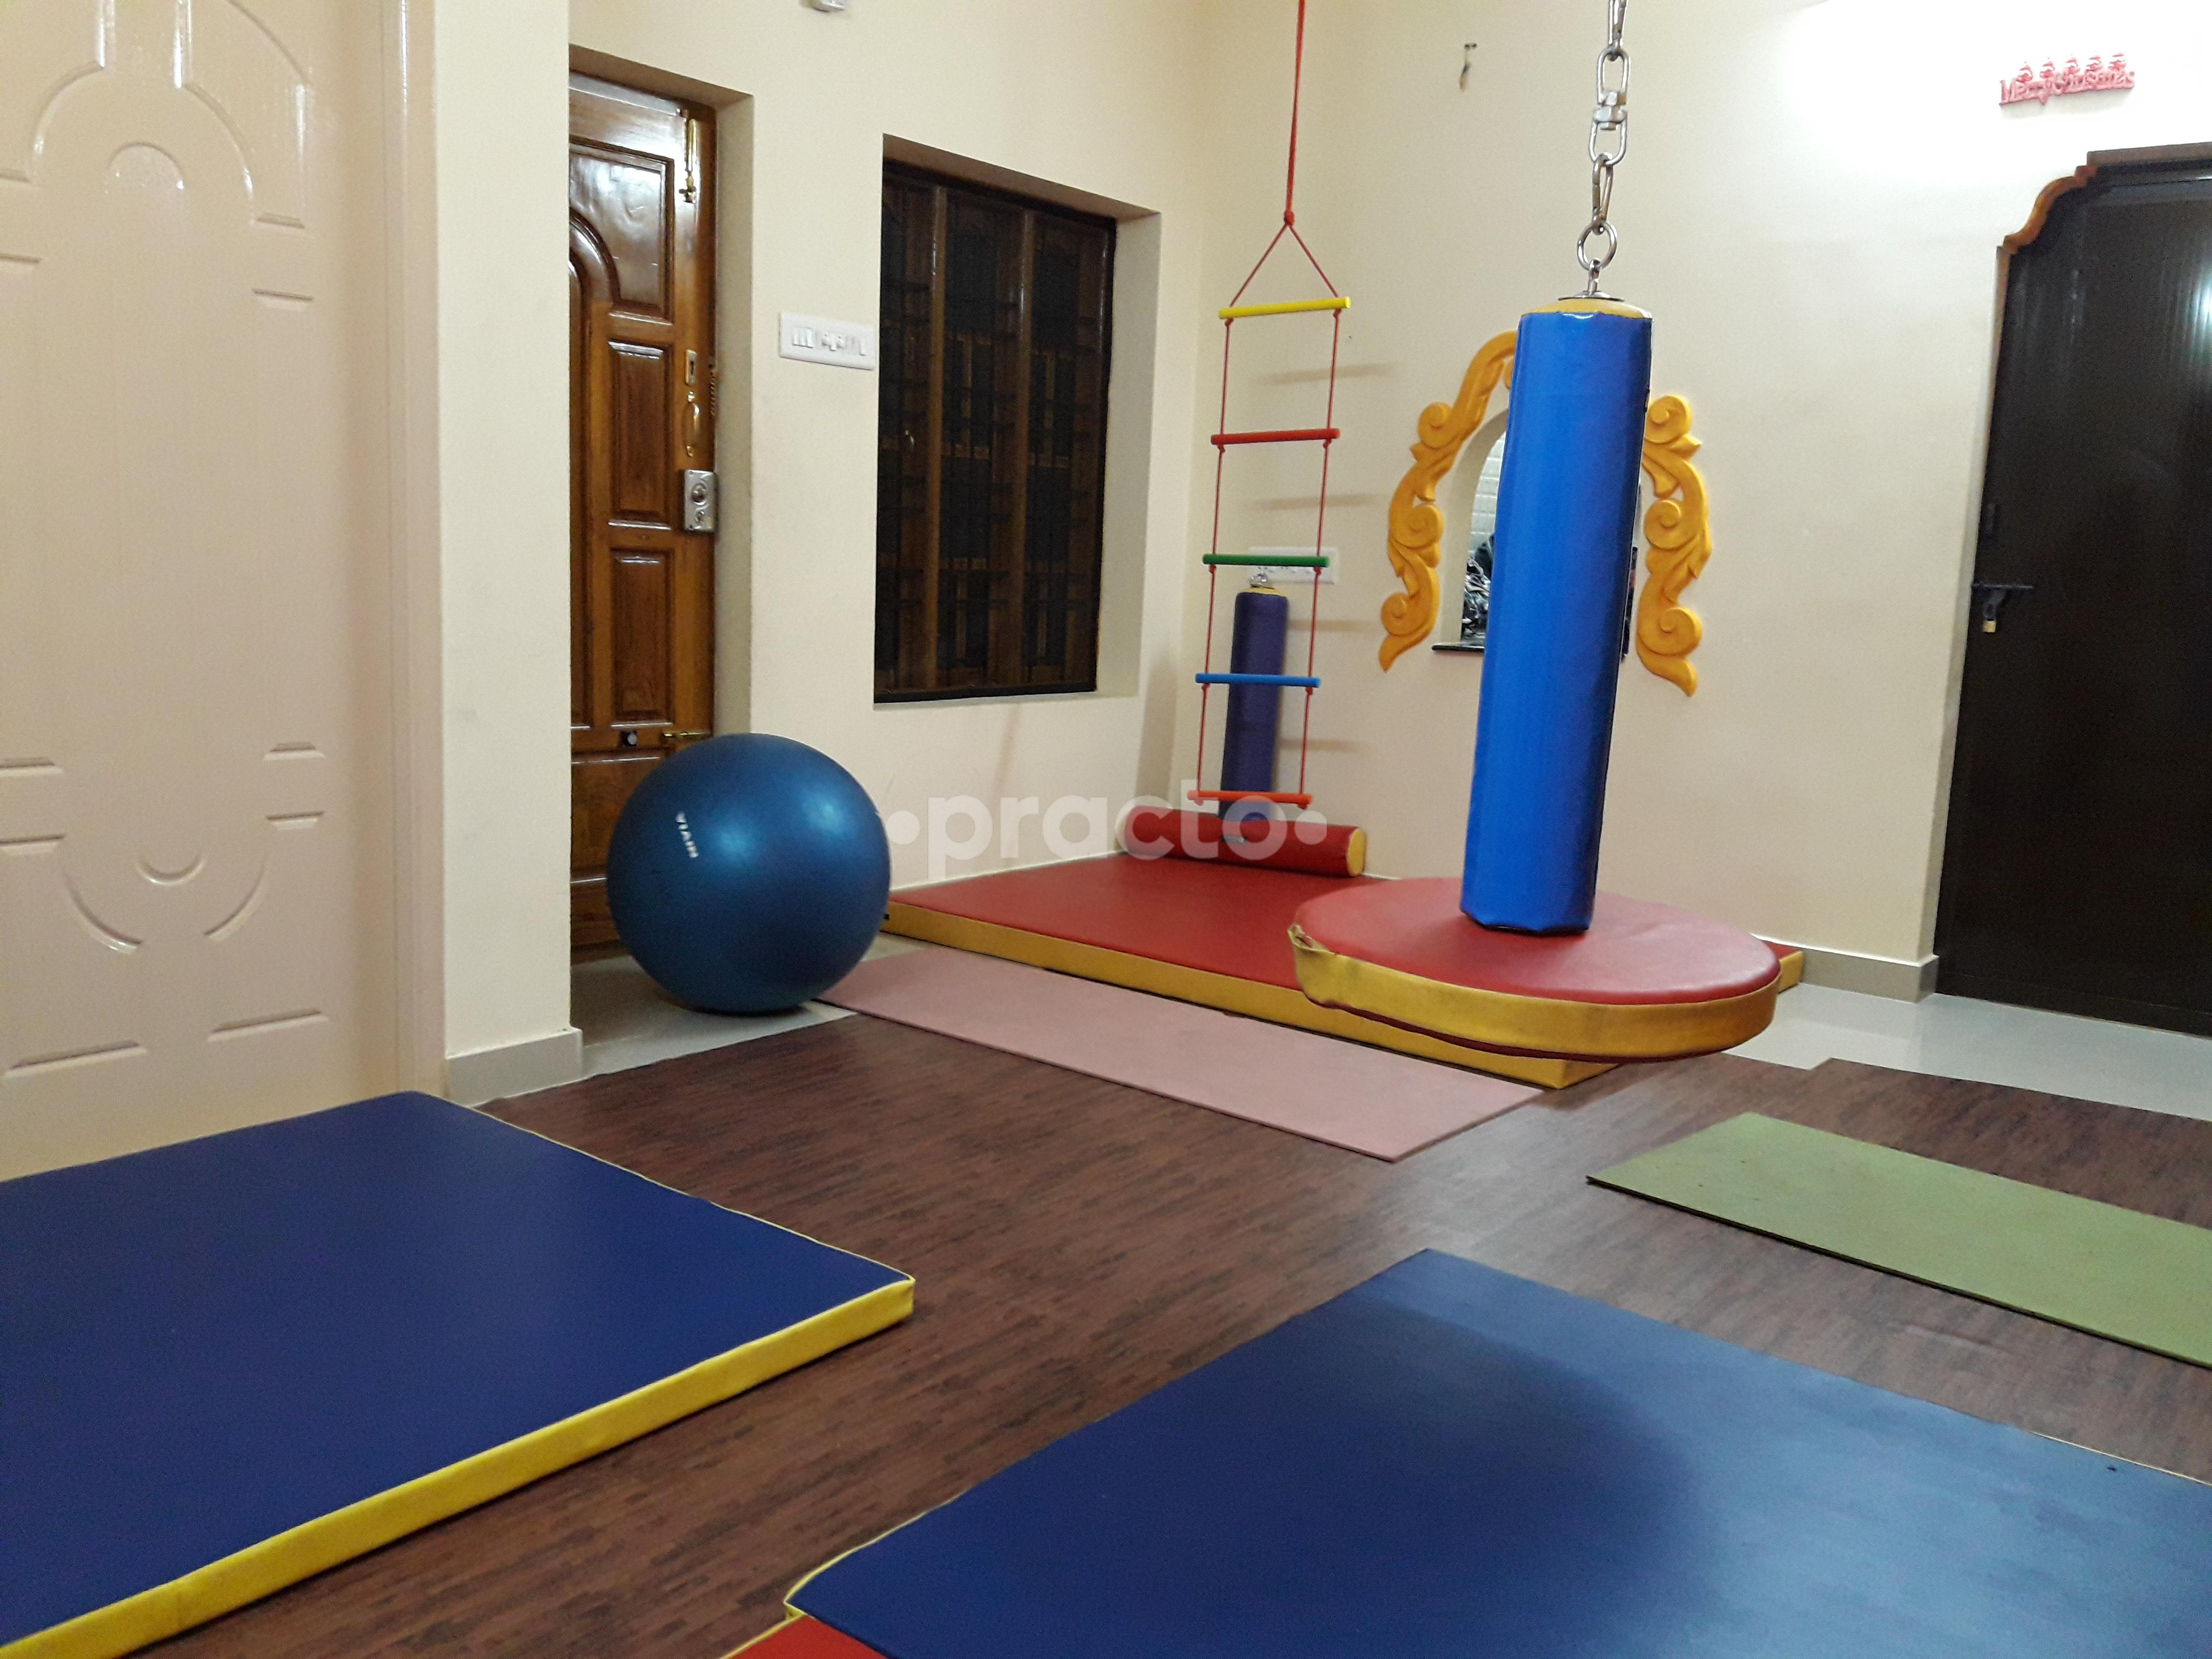 Floor mats price in chennai - Occupational Therapists In Tambaram Chennai Instant Appointment Booking View Fees Feedbacks Practo